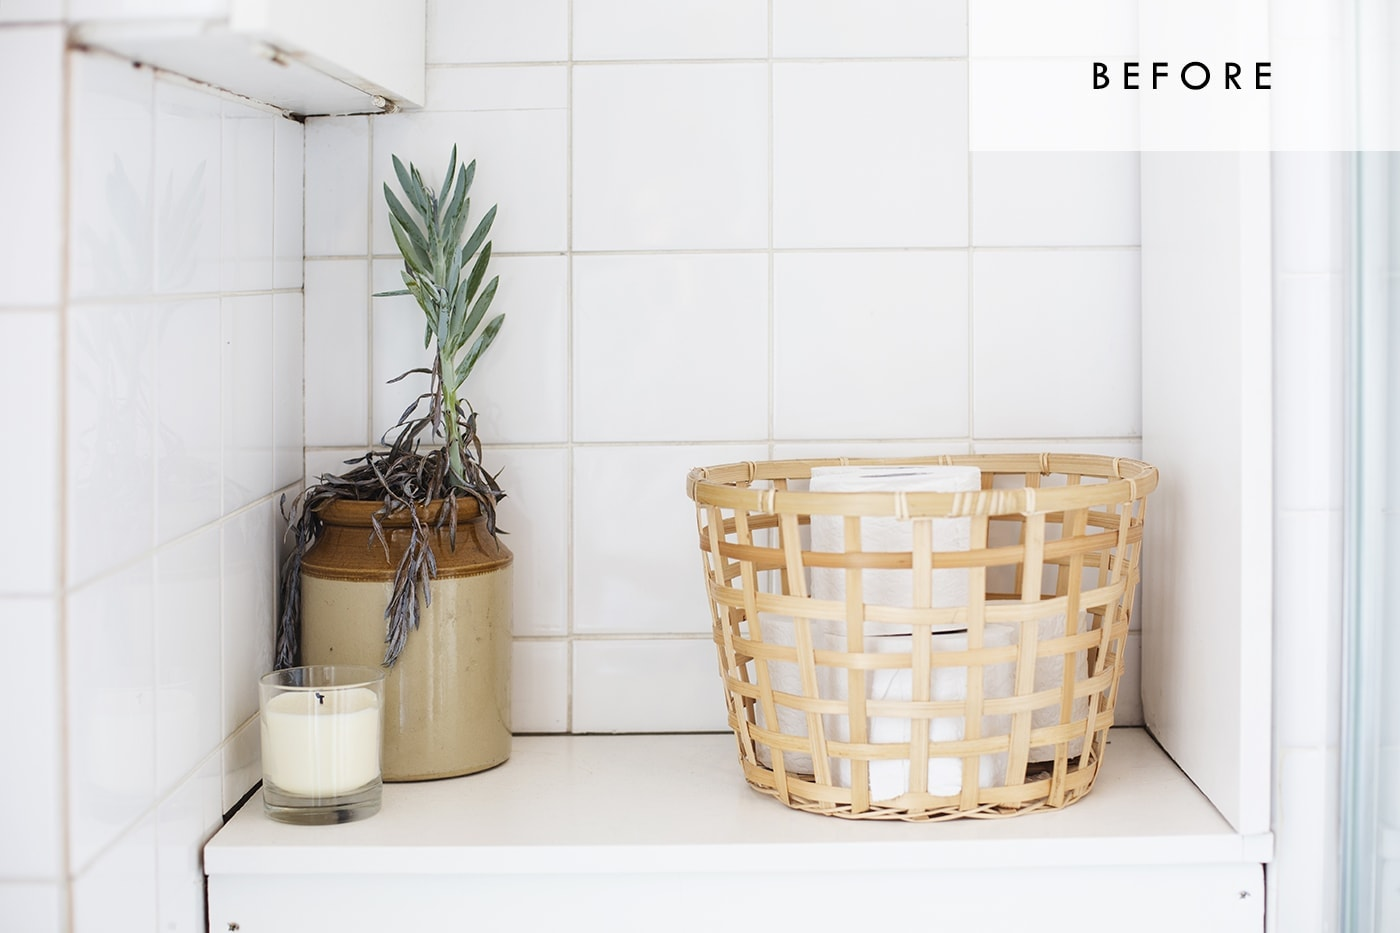 Bathroom refresh with Habitat | before 4